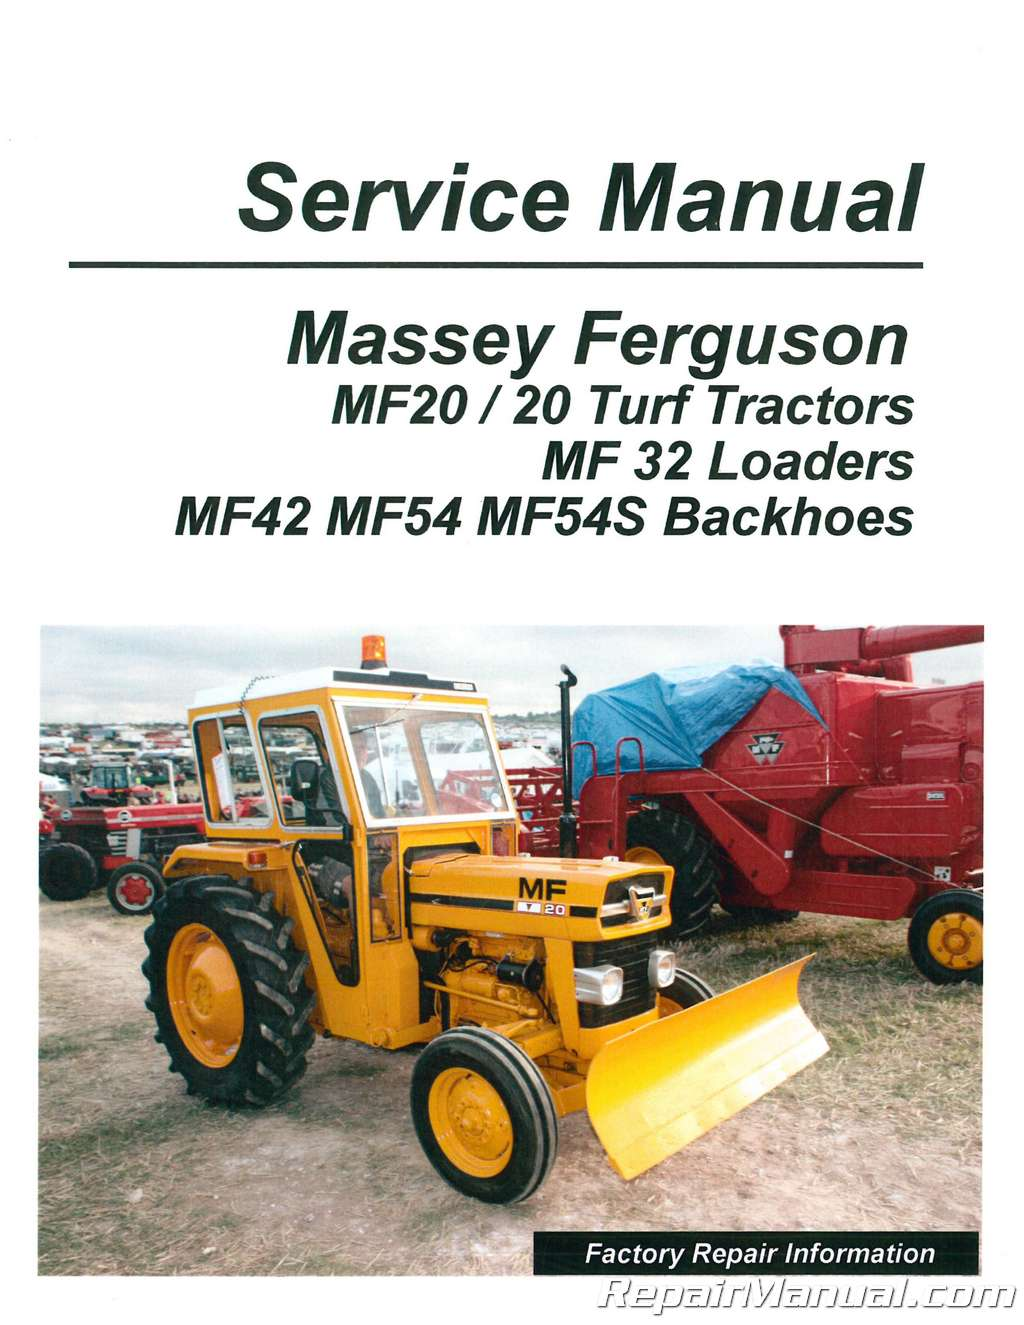 Massey Ferguson MF 20 MF32 MF42 MF54 Tractor Loader Backhoe Service Manual